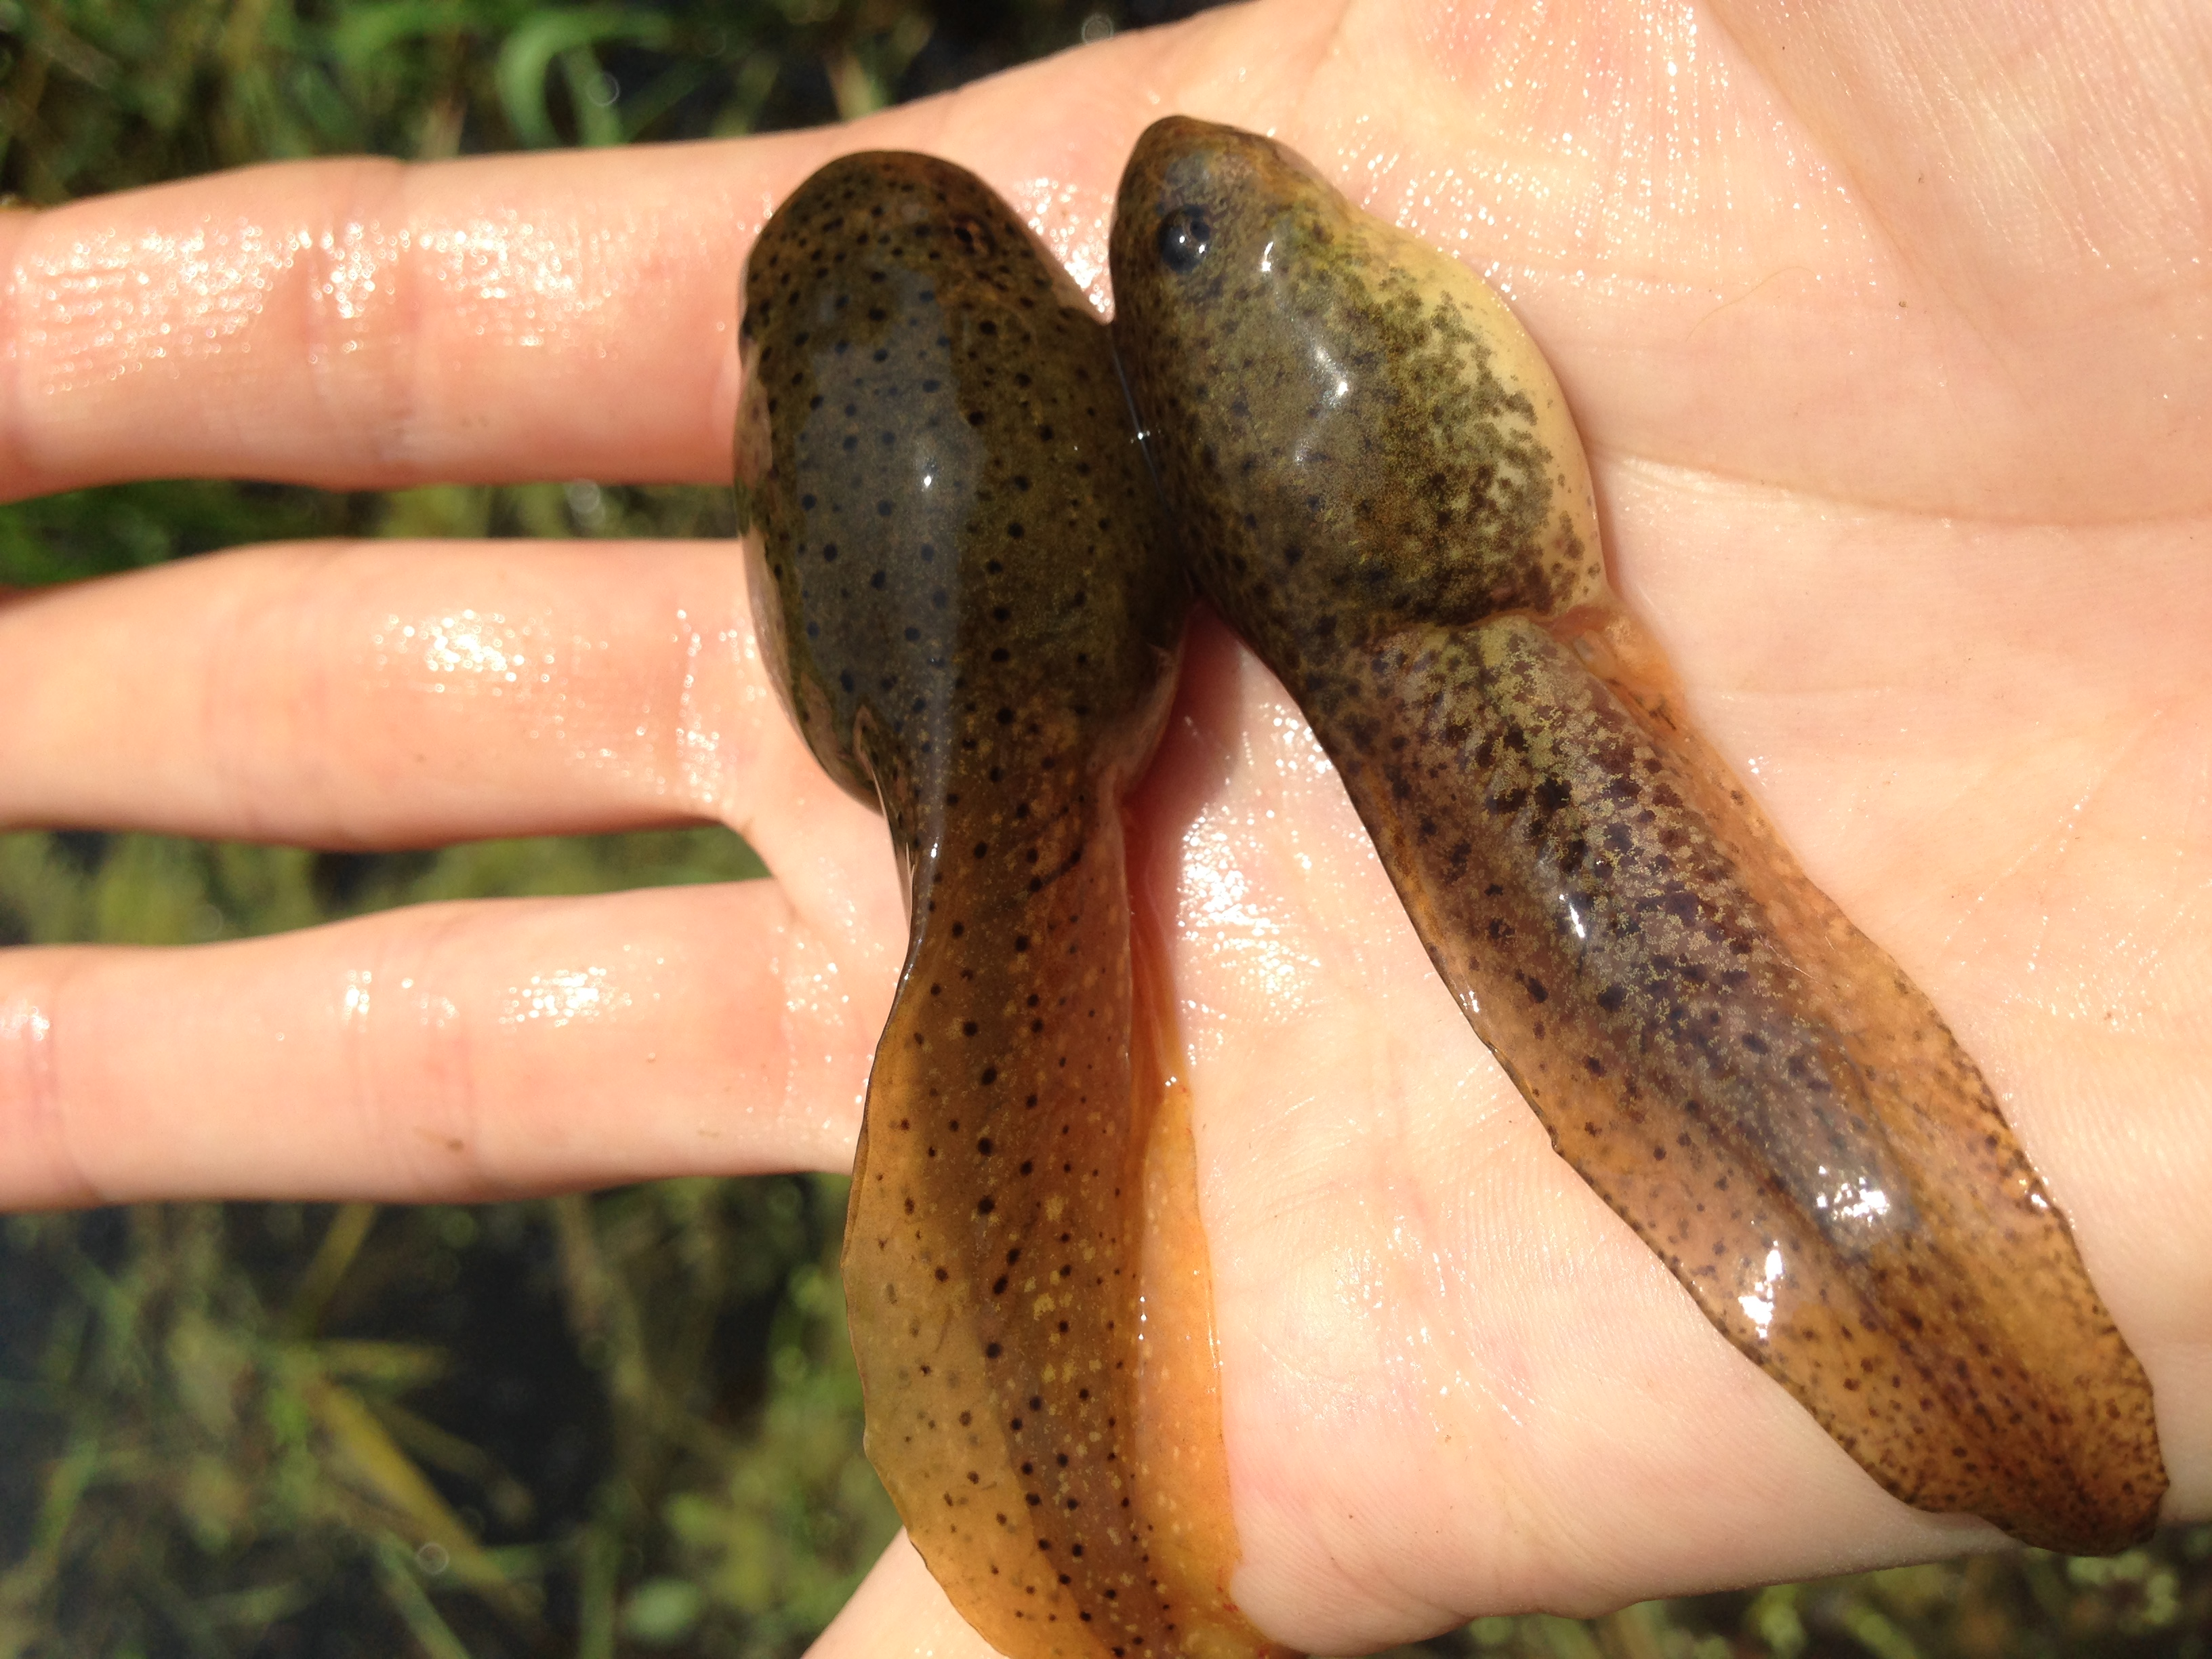 Green Frog and Bullfrog Tadpoles